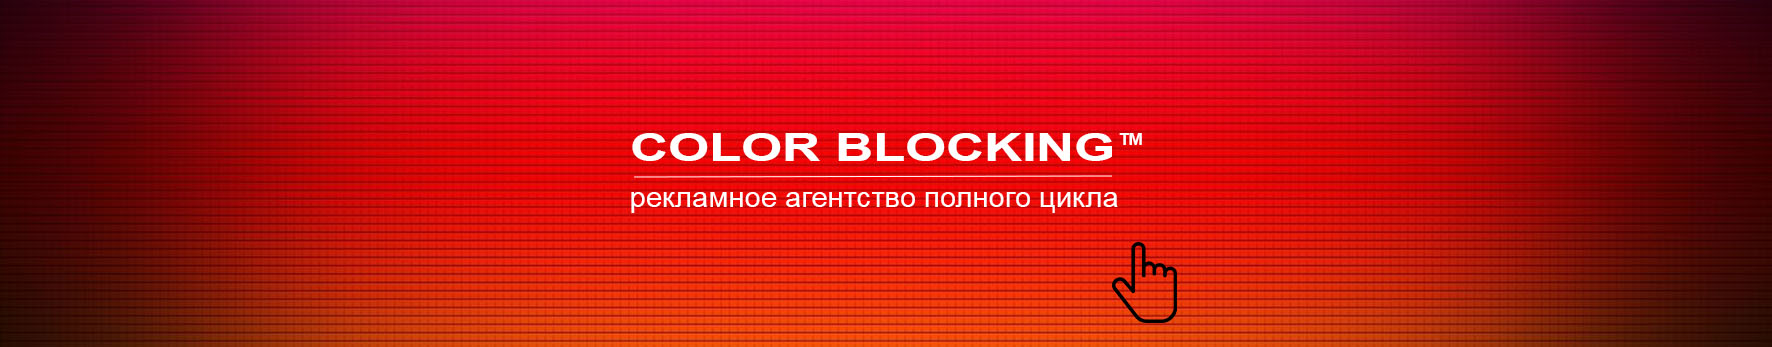 COLOR BLOCKING агентство